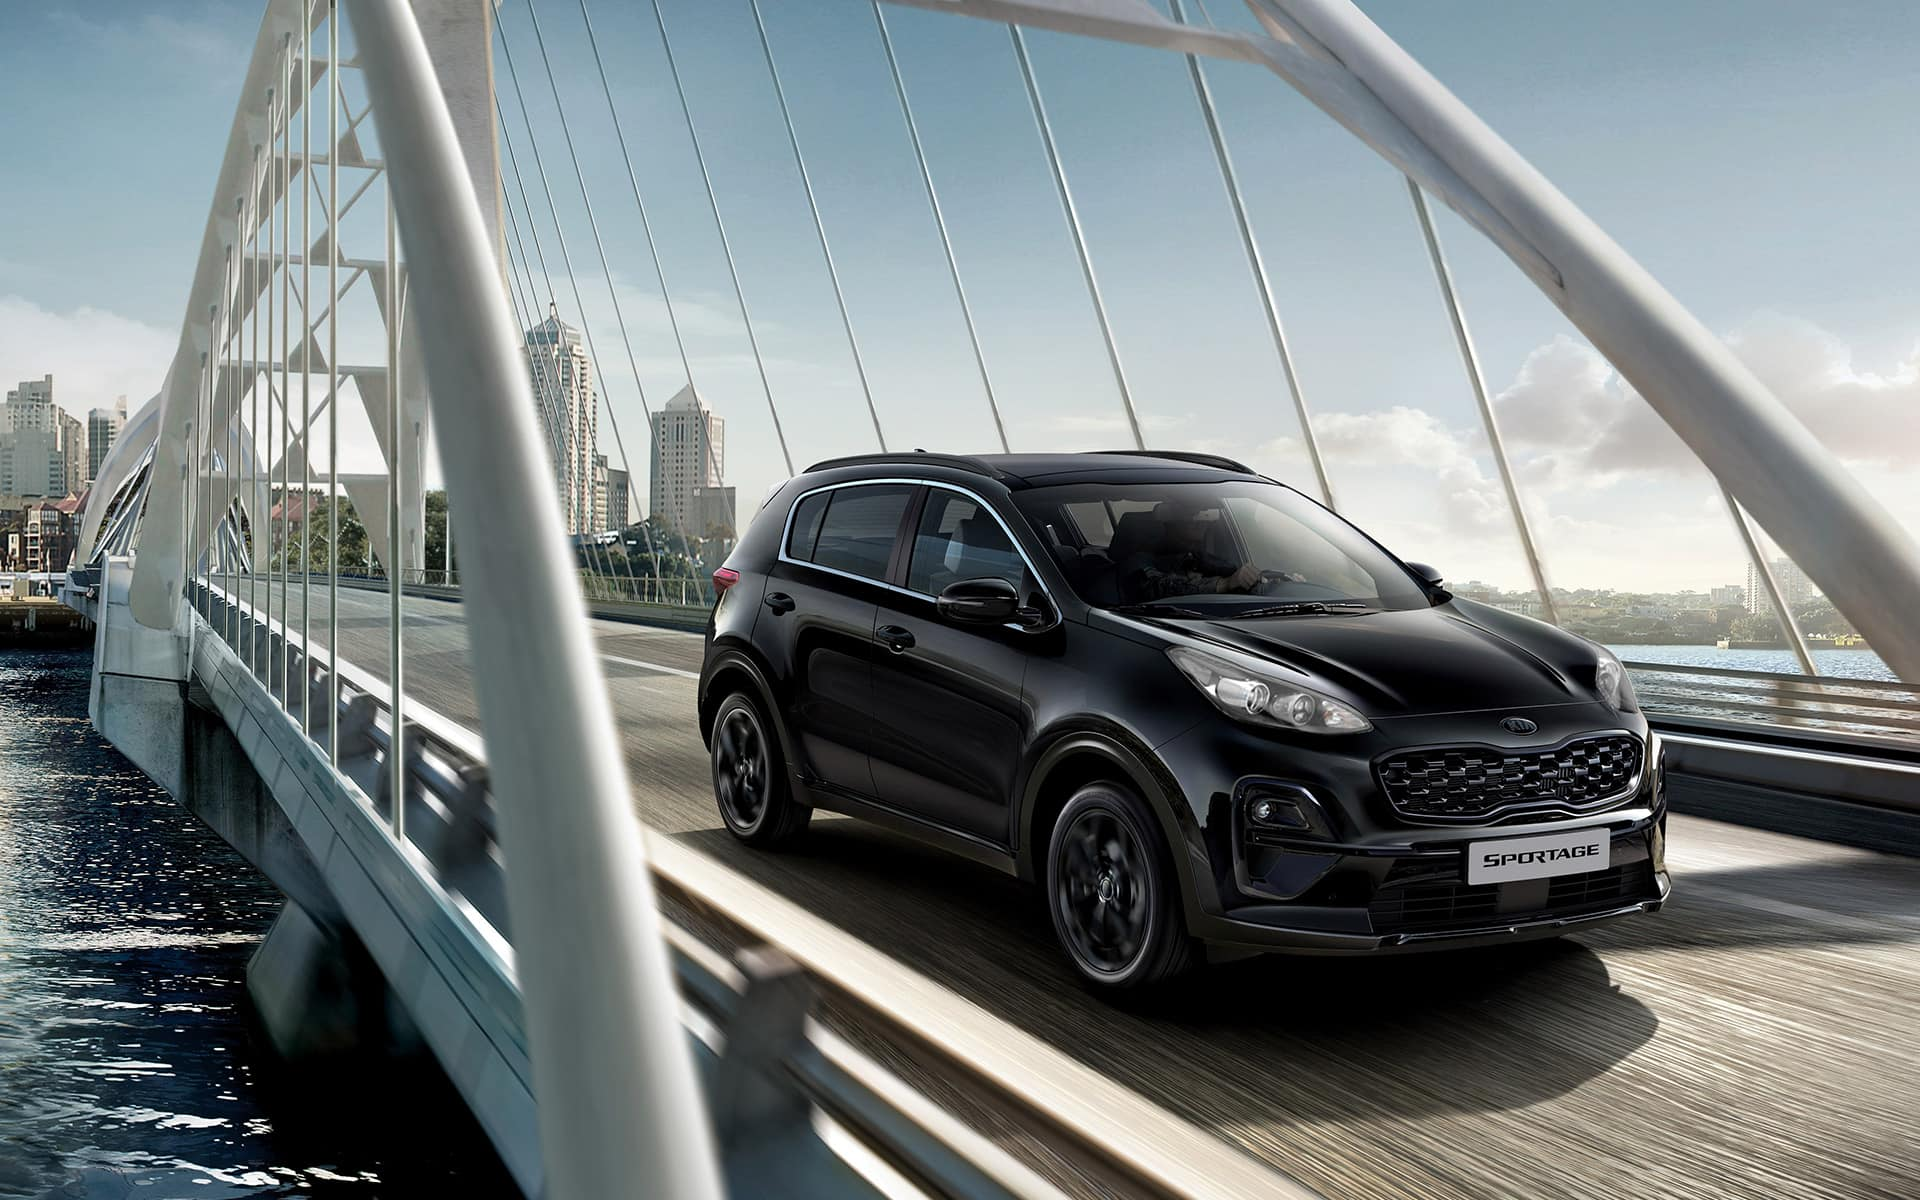 Le design du Kia Sportage Black Edition